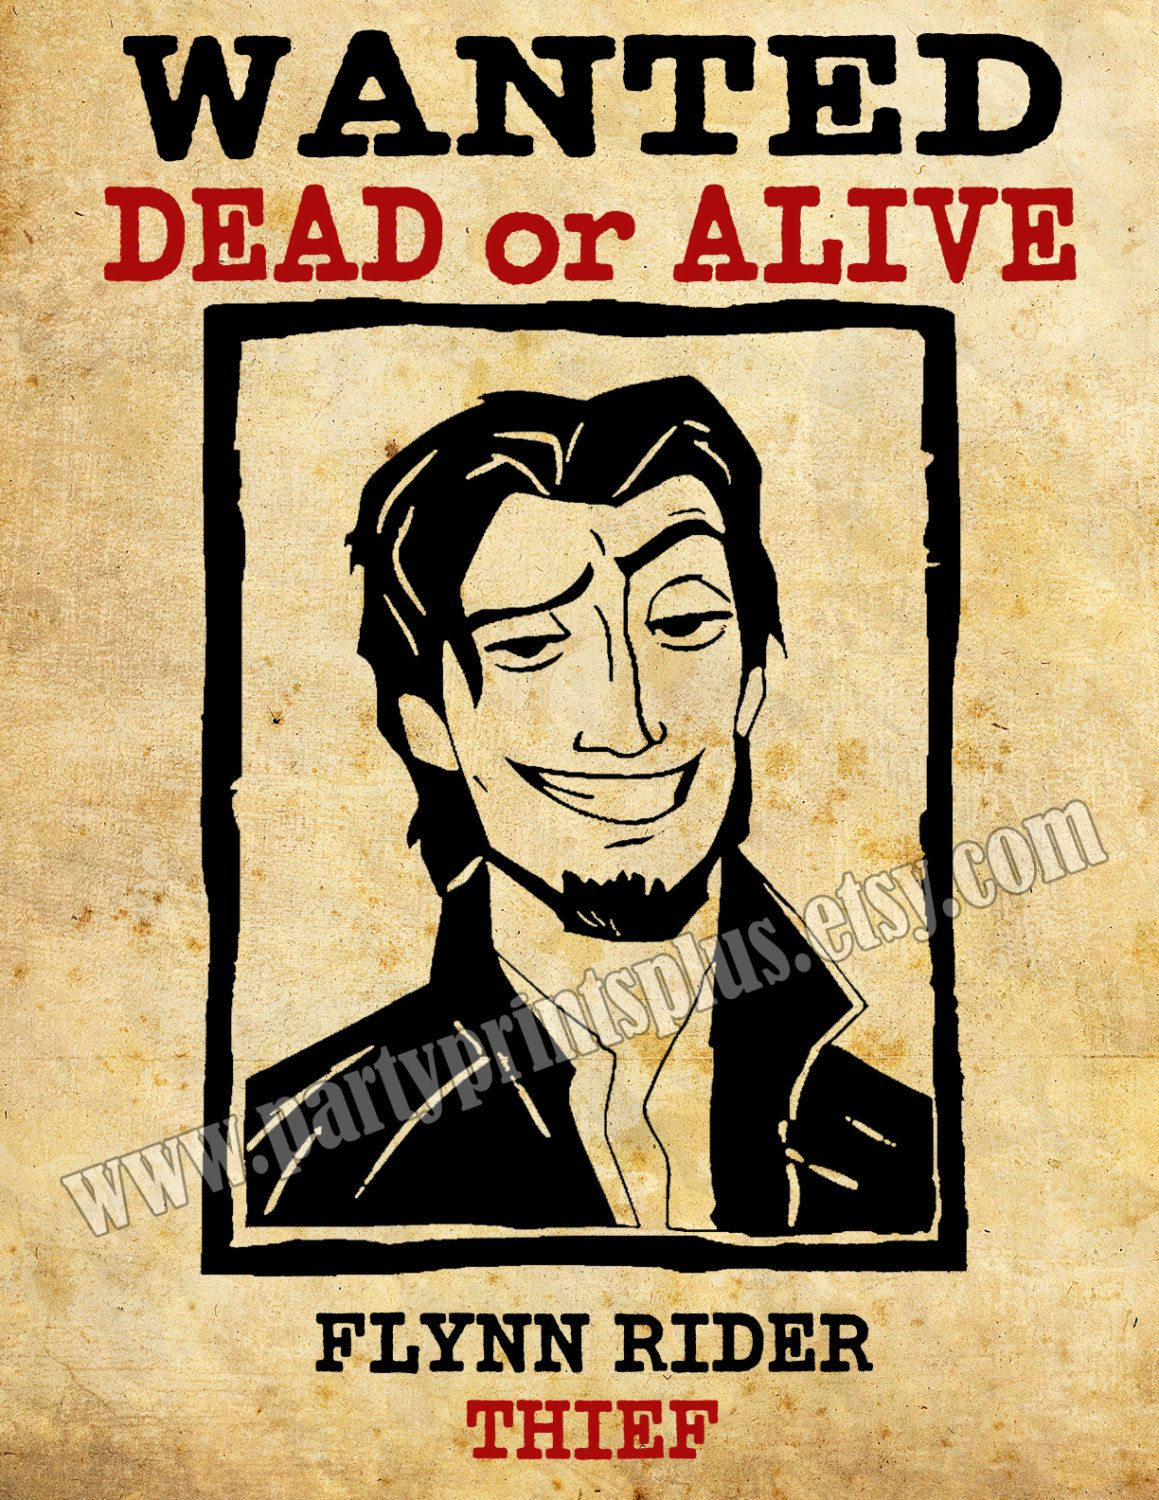 Flynn Rider Wanted Poster Decoration Forpartyprintsplus, $1.00 - Free Printable Flynn Rider Wanted Poster